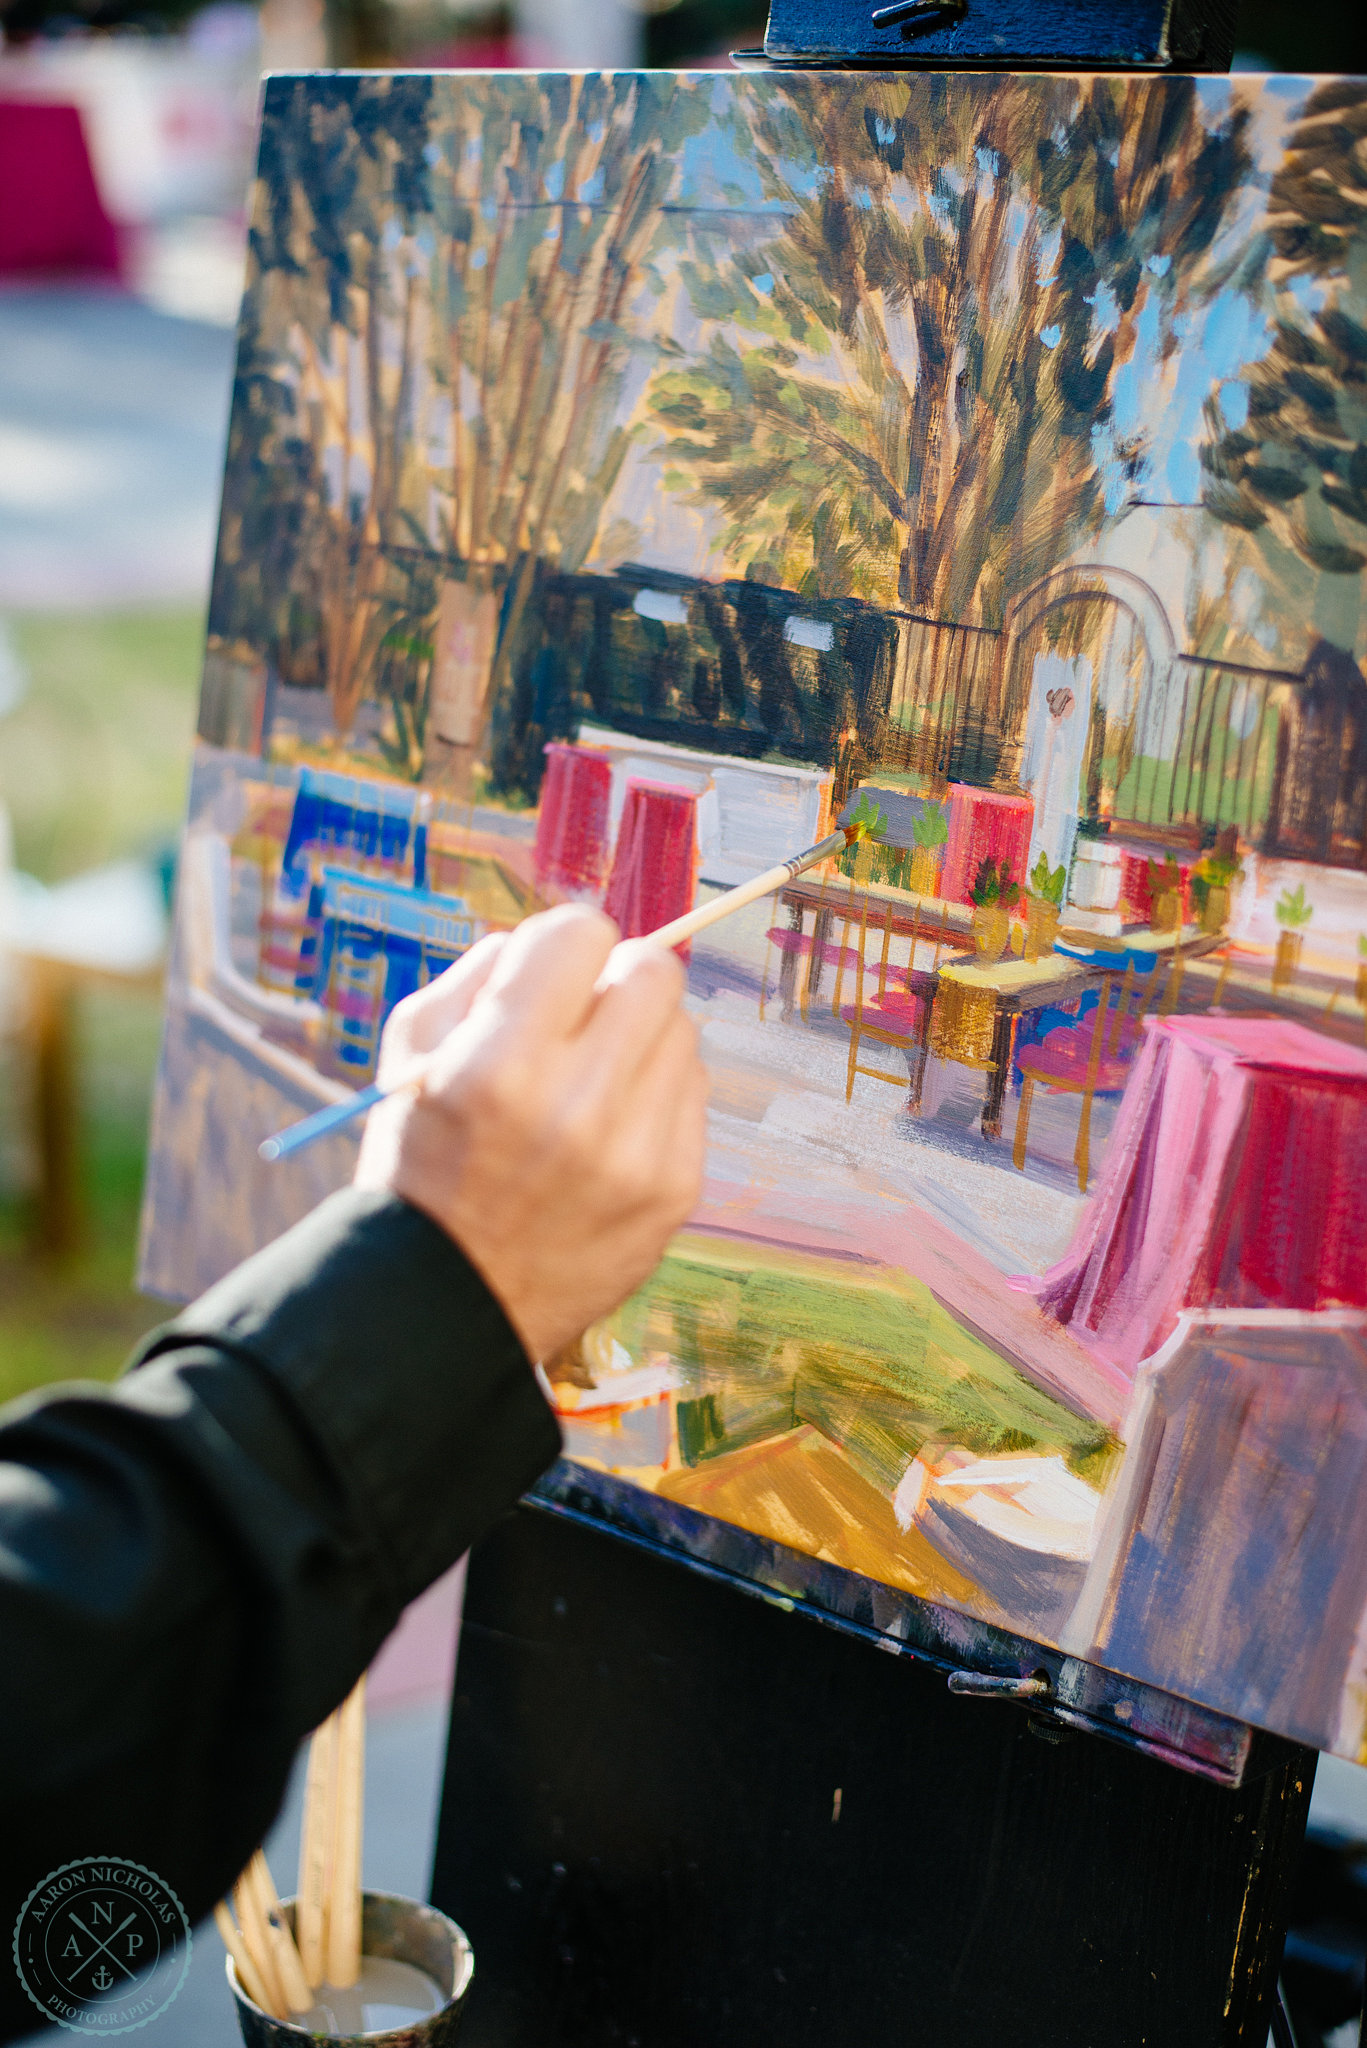 live-wedding-painting-by-ben-keys-live-event-artist-of-wed-on-canvas-garden-wedding-gibbes-museum-pure-luxe-bride-for-the-knot